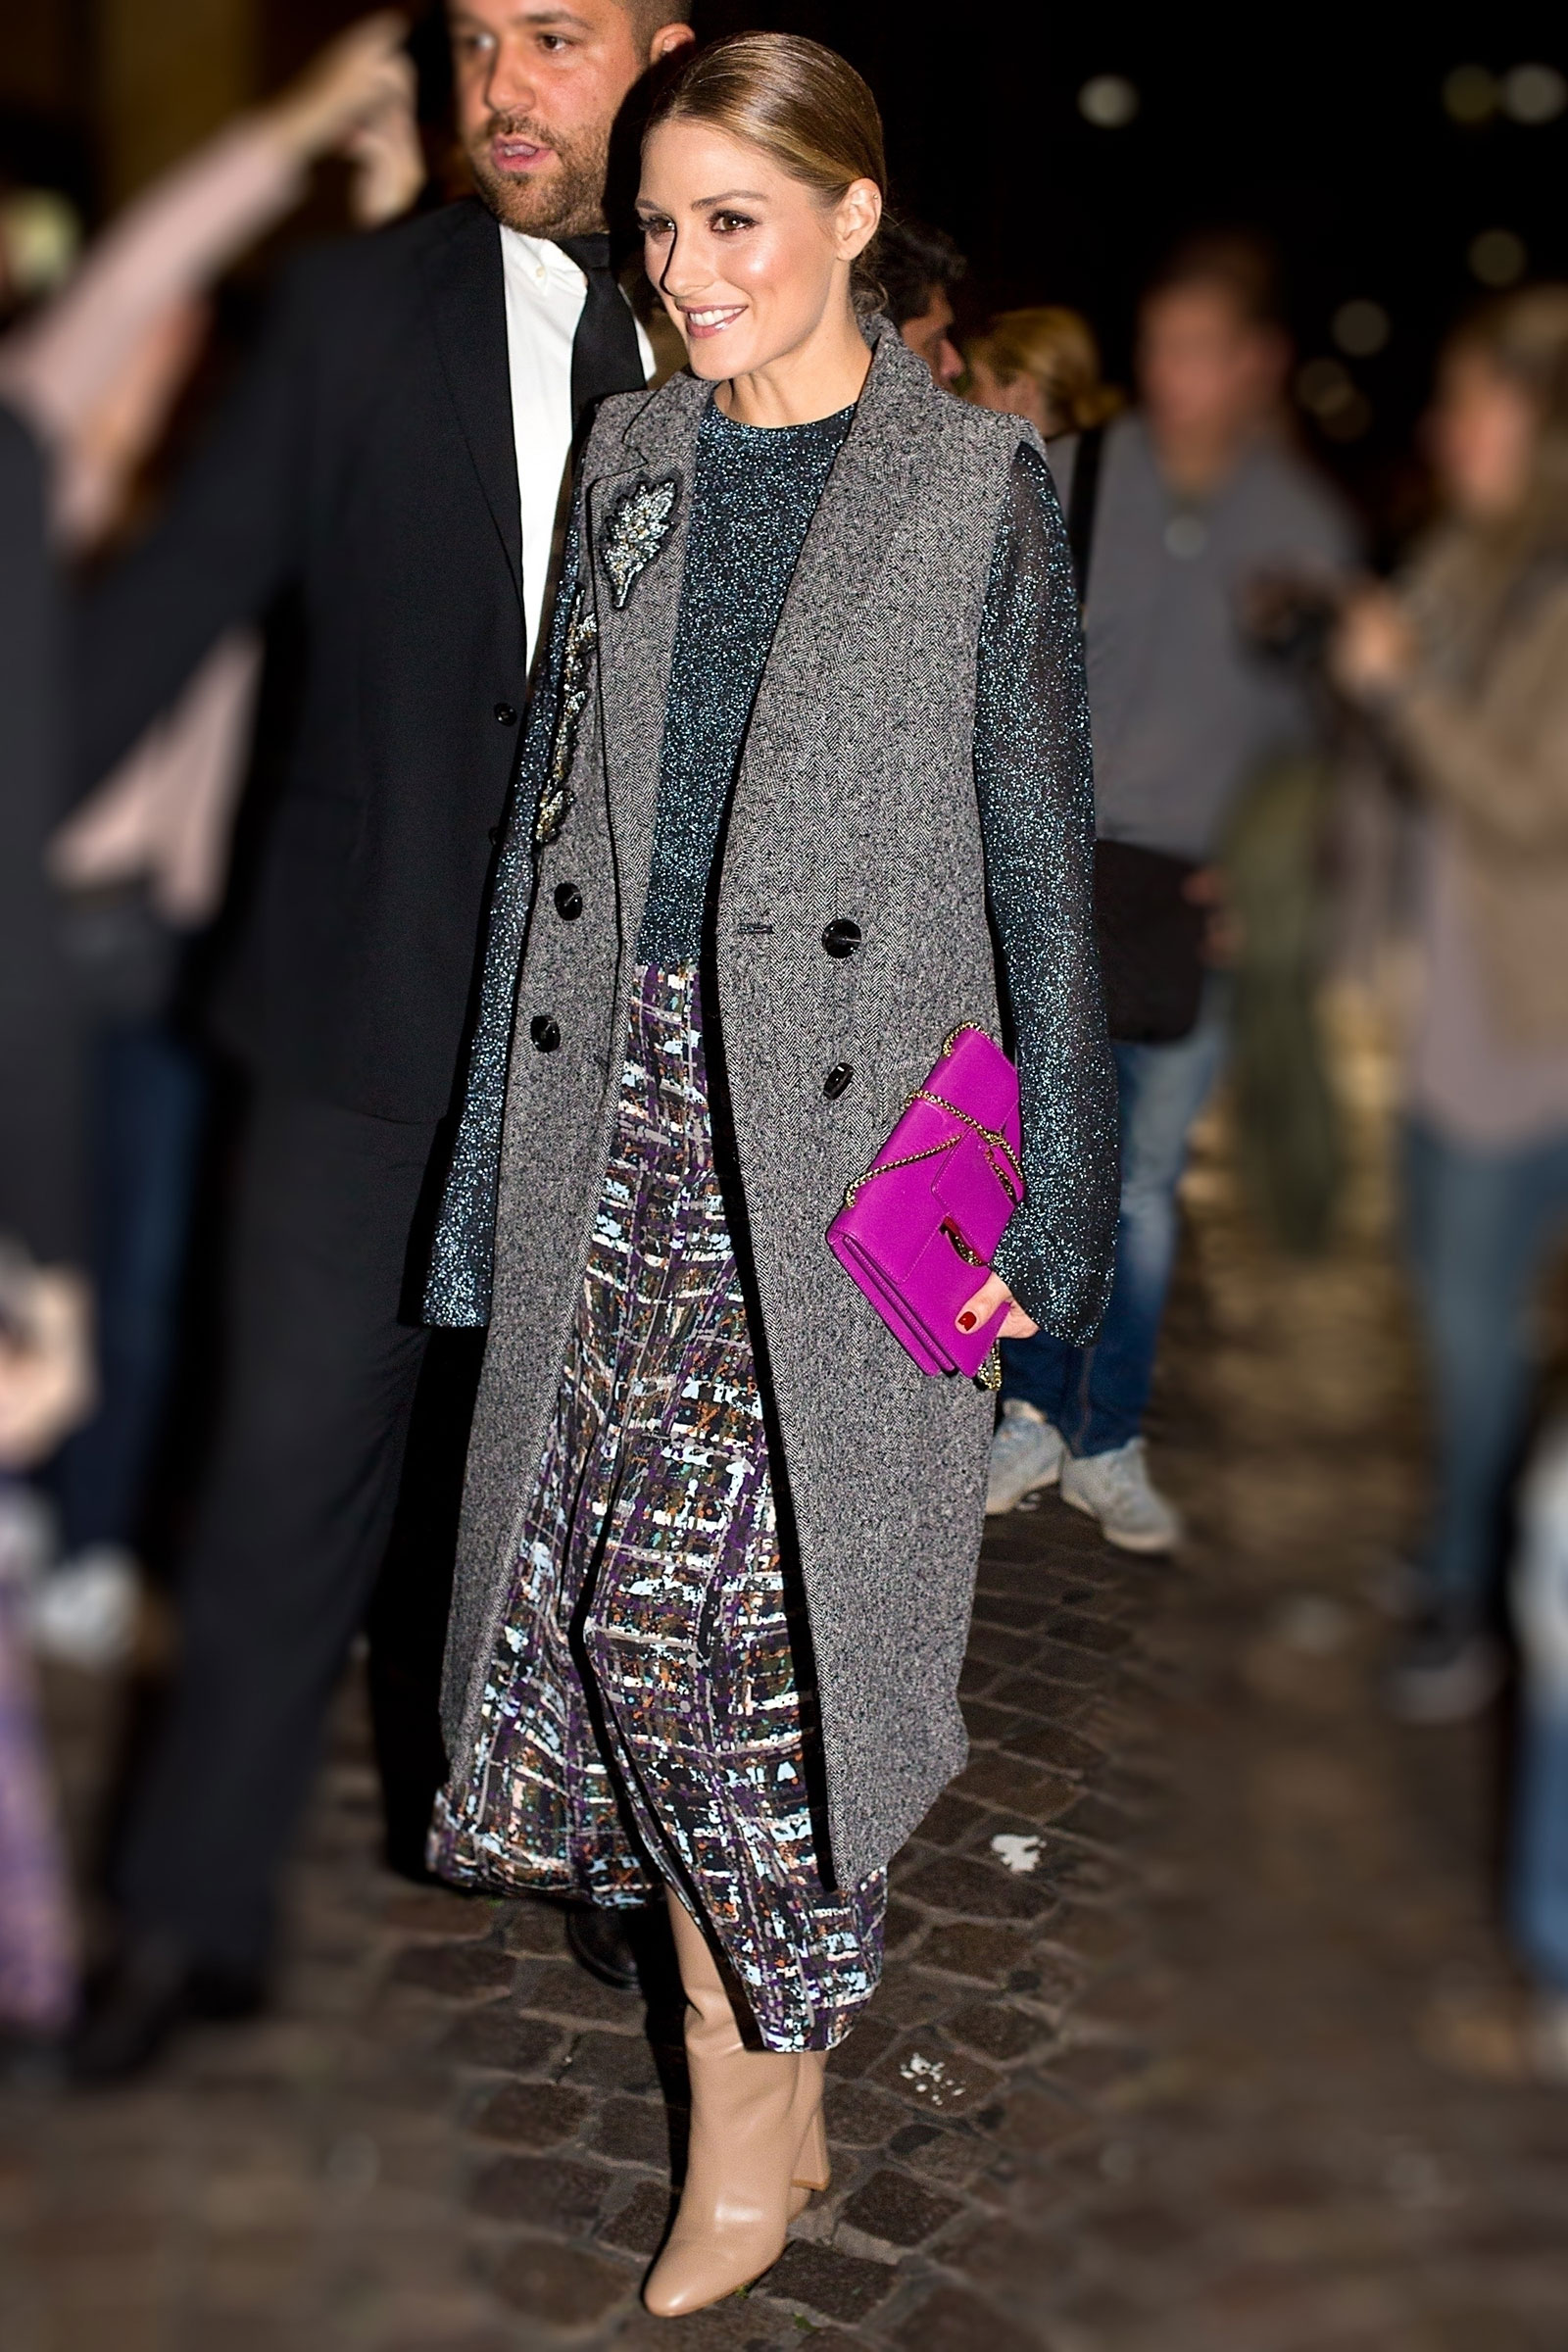 Olivia Palermo wears a sleeveless coat and beige boots at the Ferragamo show in Milan.